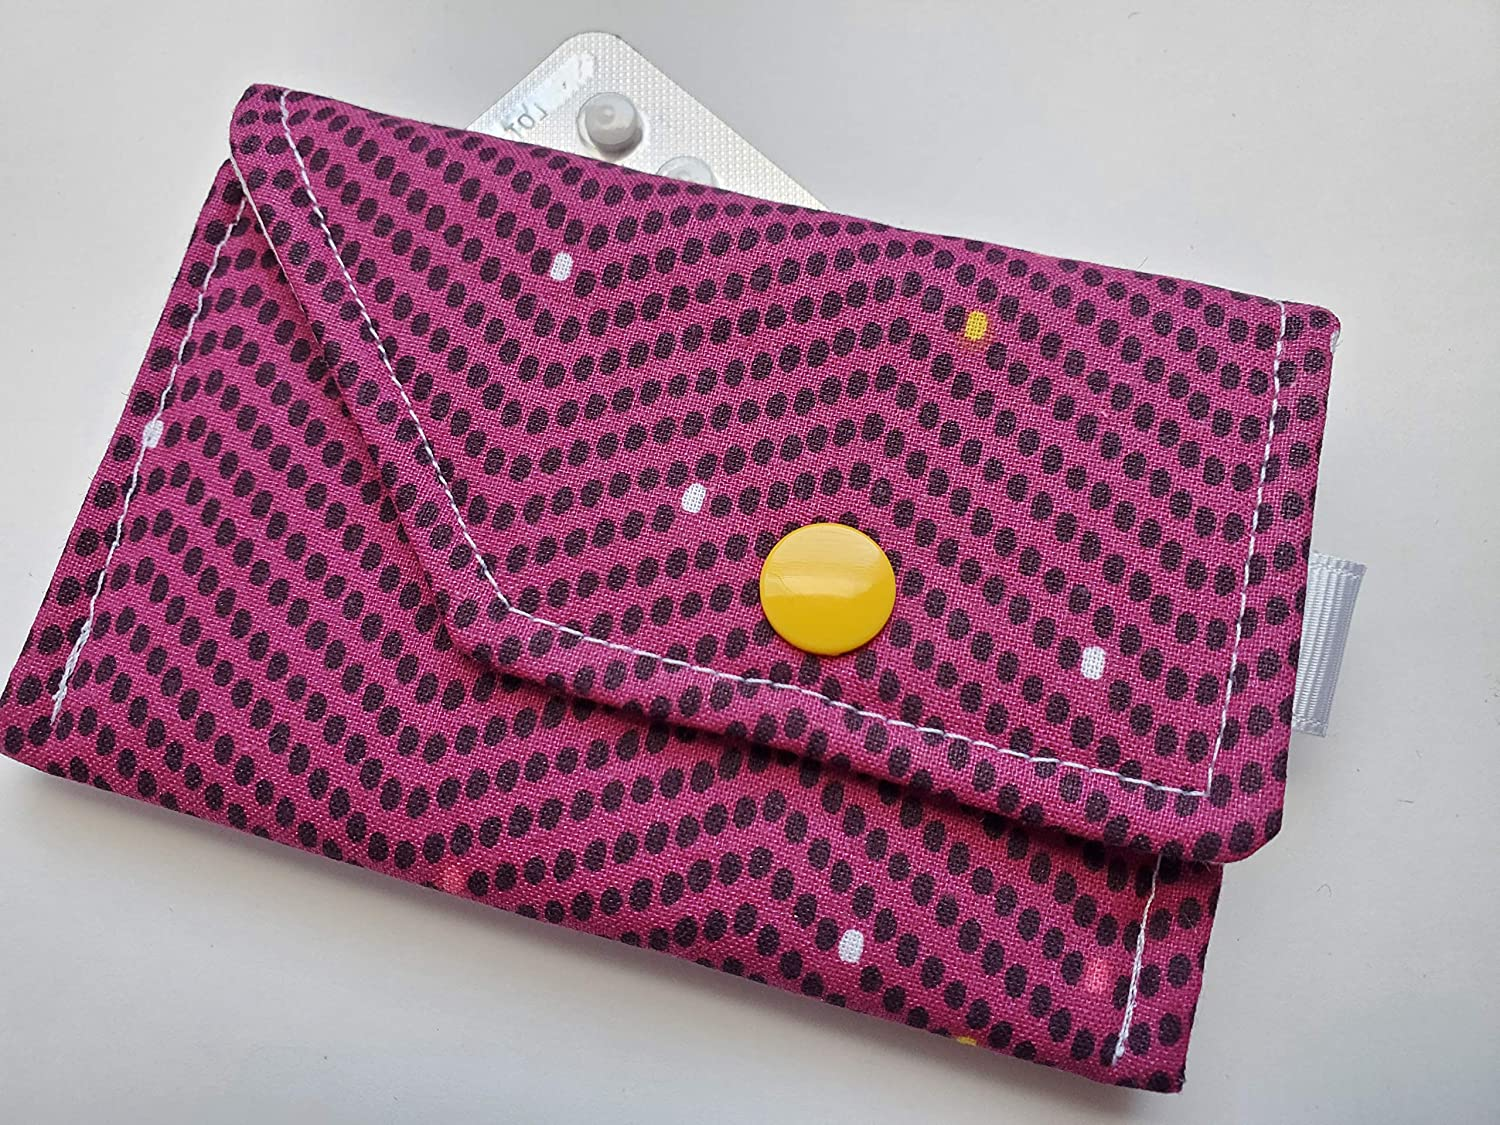 Birth Control Case Sleeve with Snap Direct store and Optional Closure Max 57% OFF Keychai